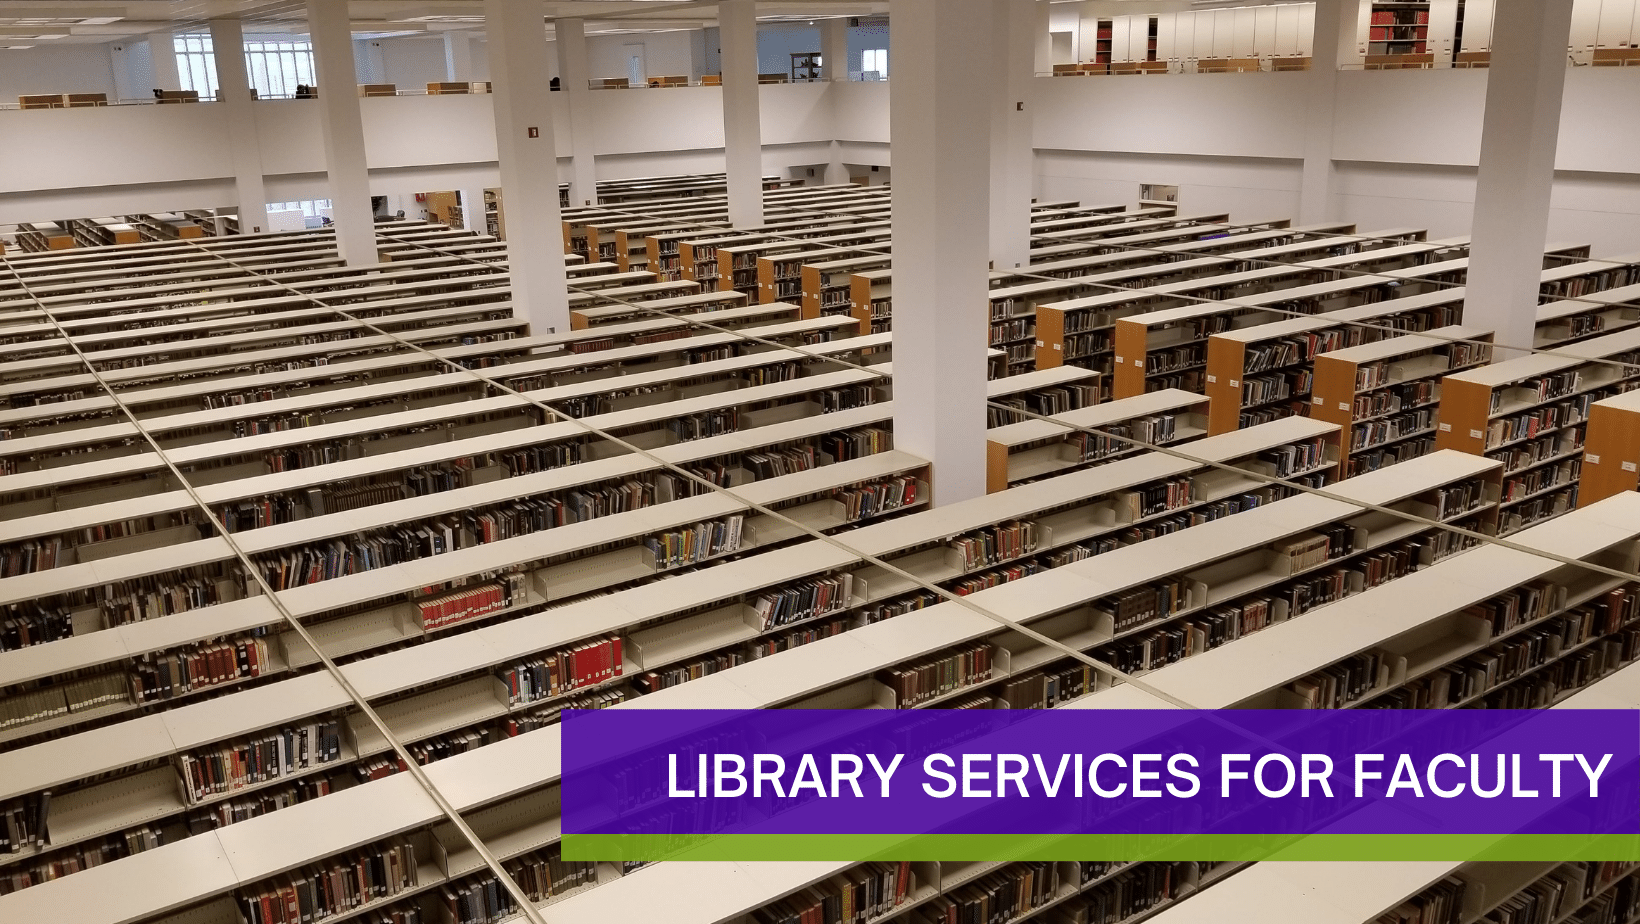 library stacks viewed from the top with Library Services for Faculty overlaid